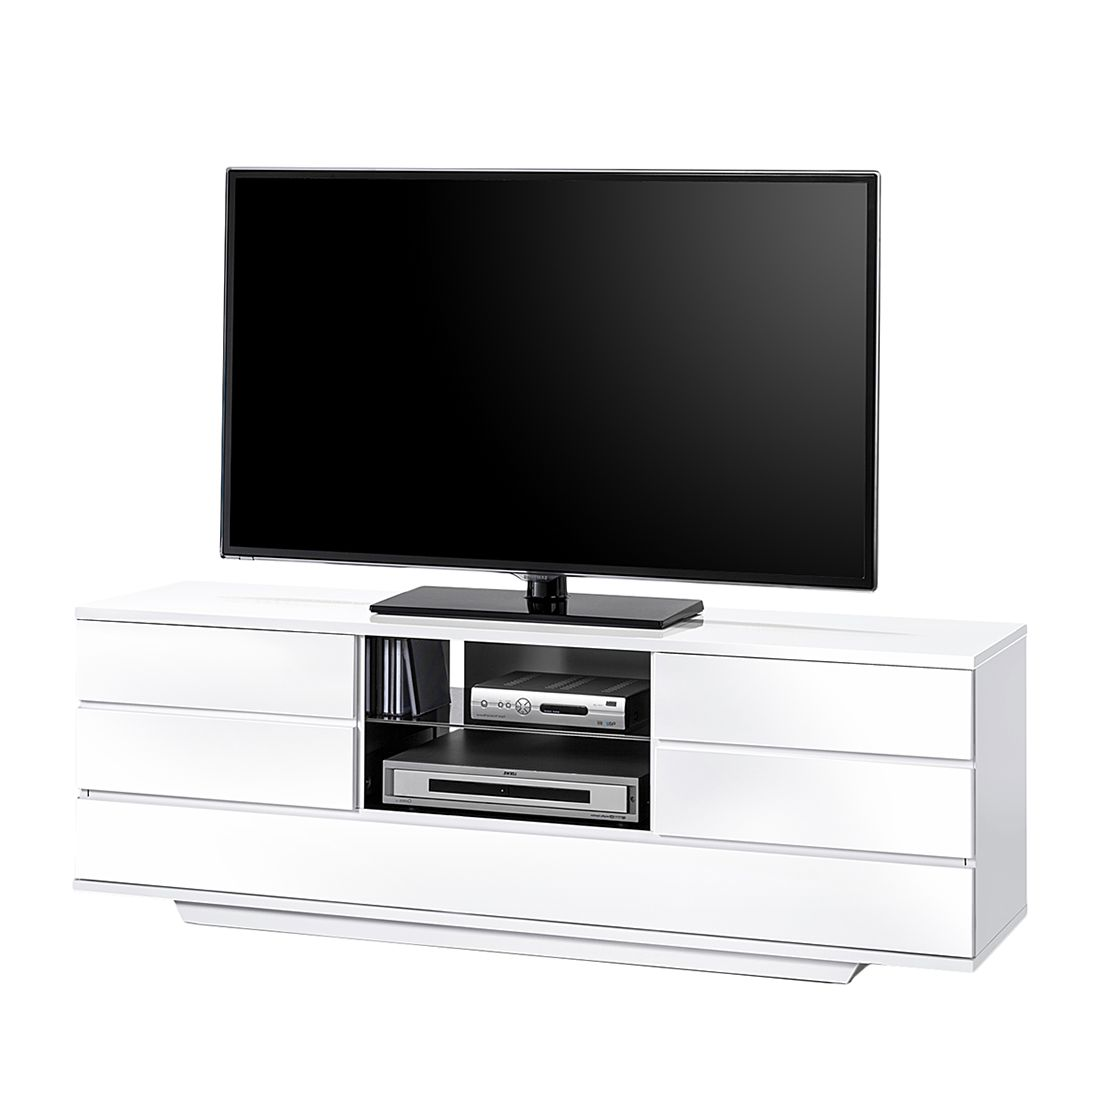 tv lowboard grayslake hochglanz wei hochglanz schwarz roomscape g nstig kaufen. Black Bedroom Furniture Sets. Home Design Ideas